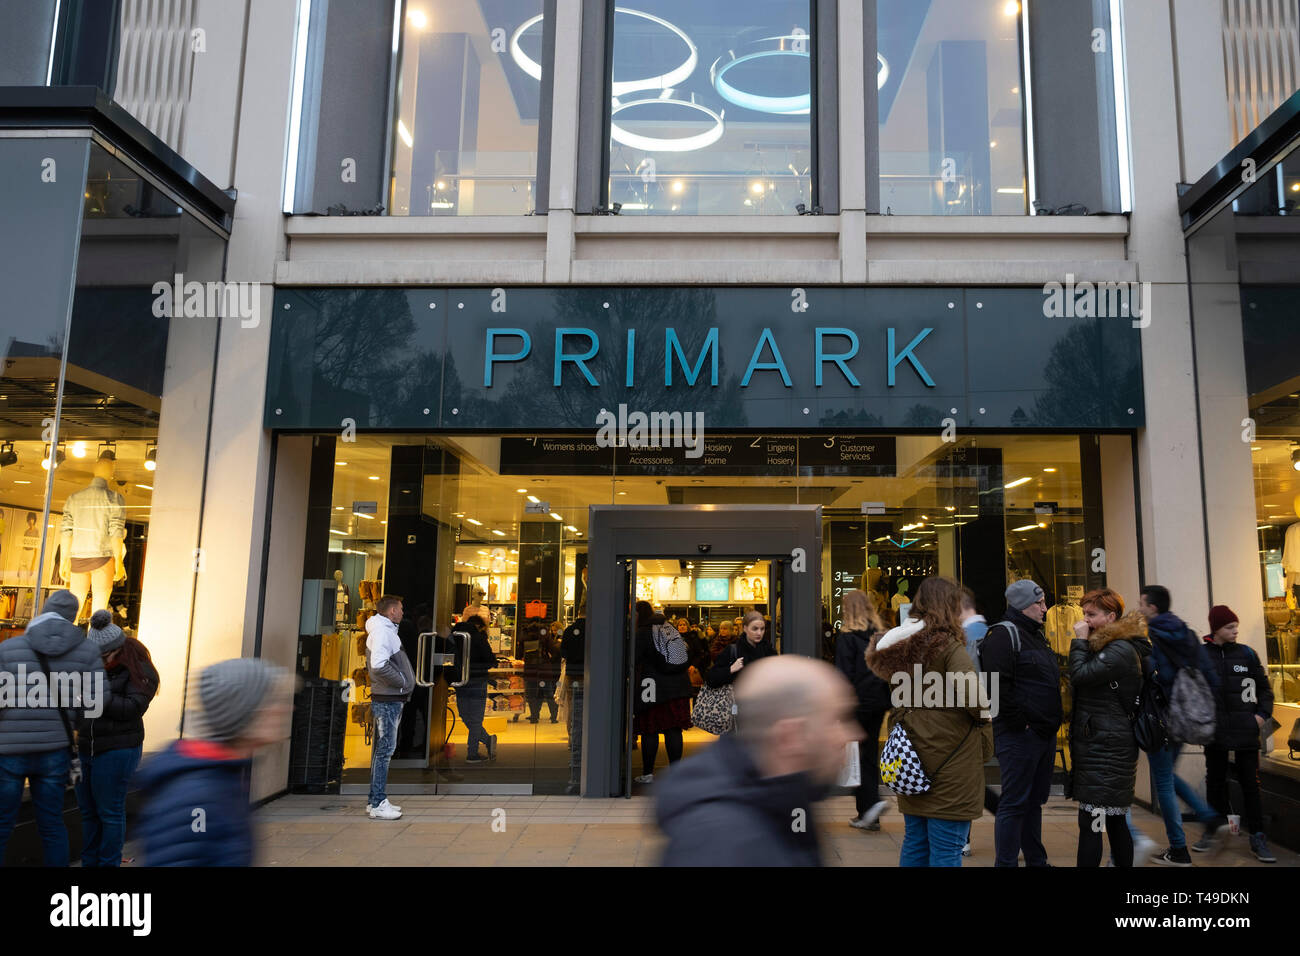 Primark store on Princes Street,Edinburgh, Scotland, UK - Stock Image